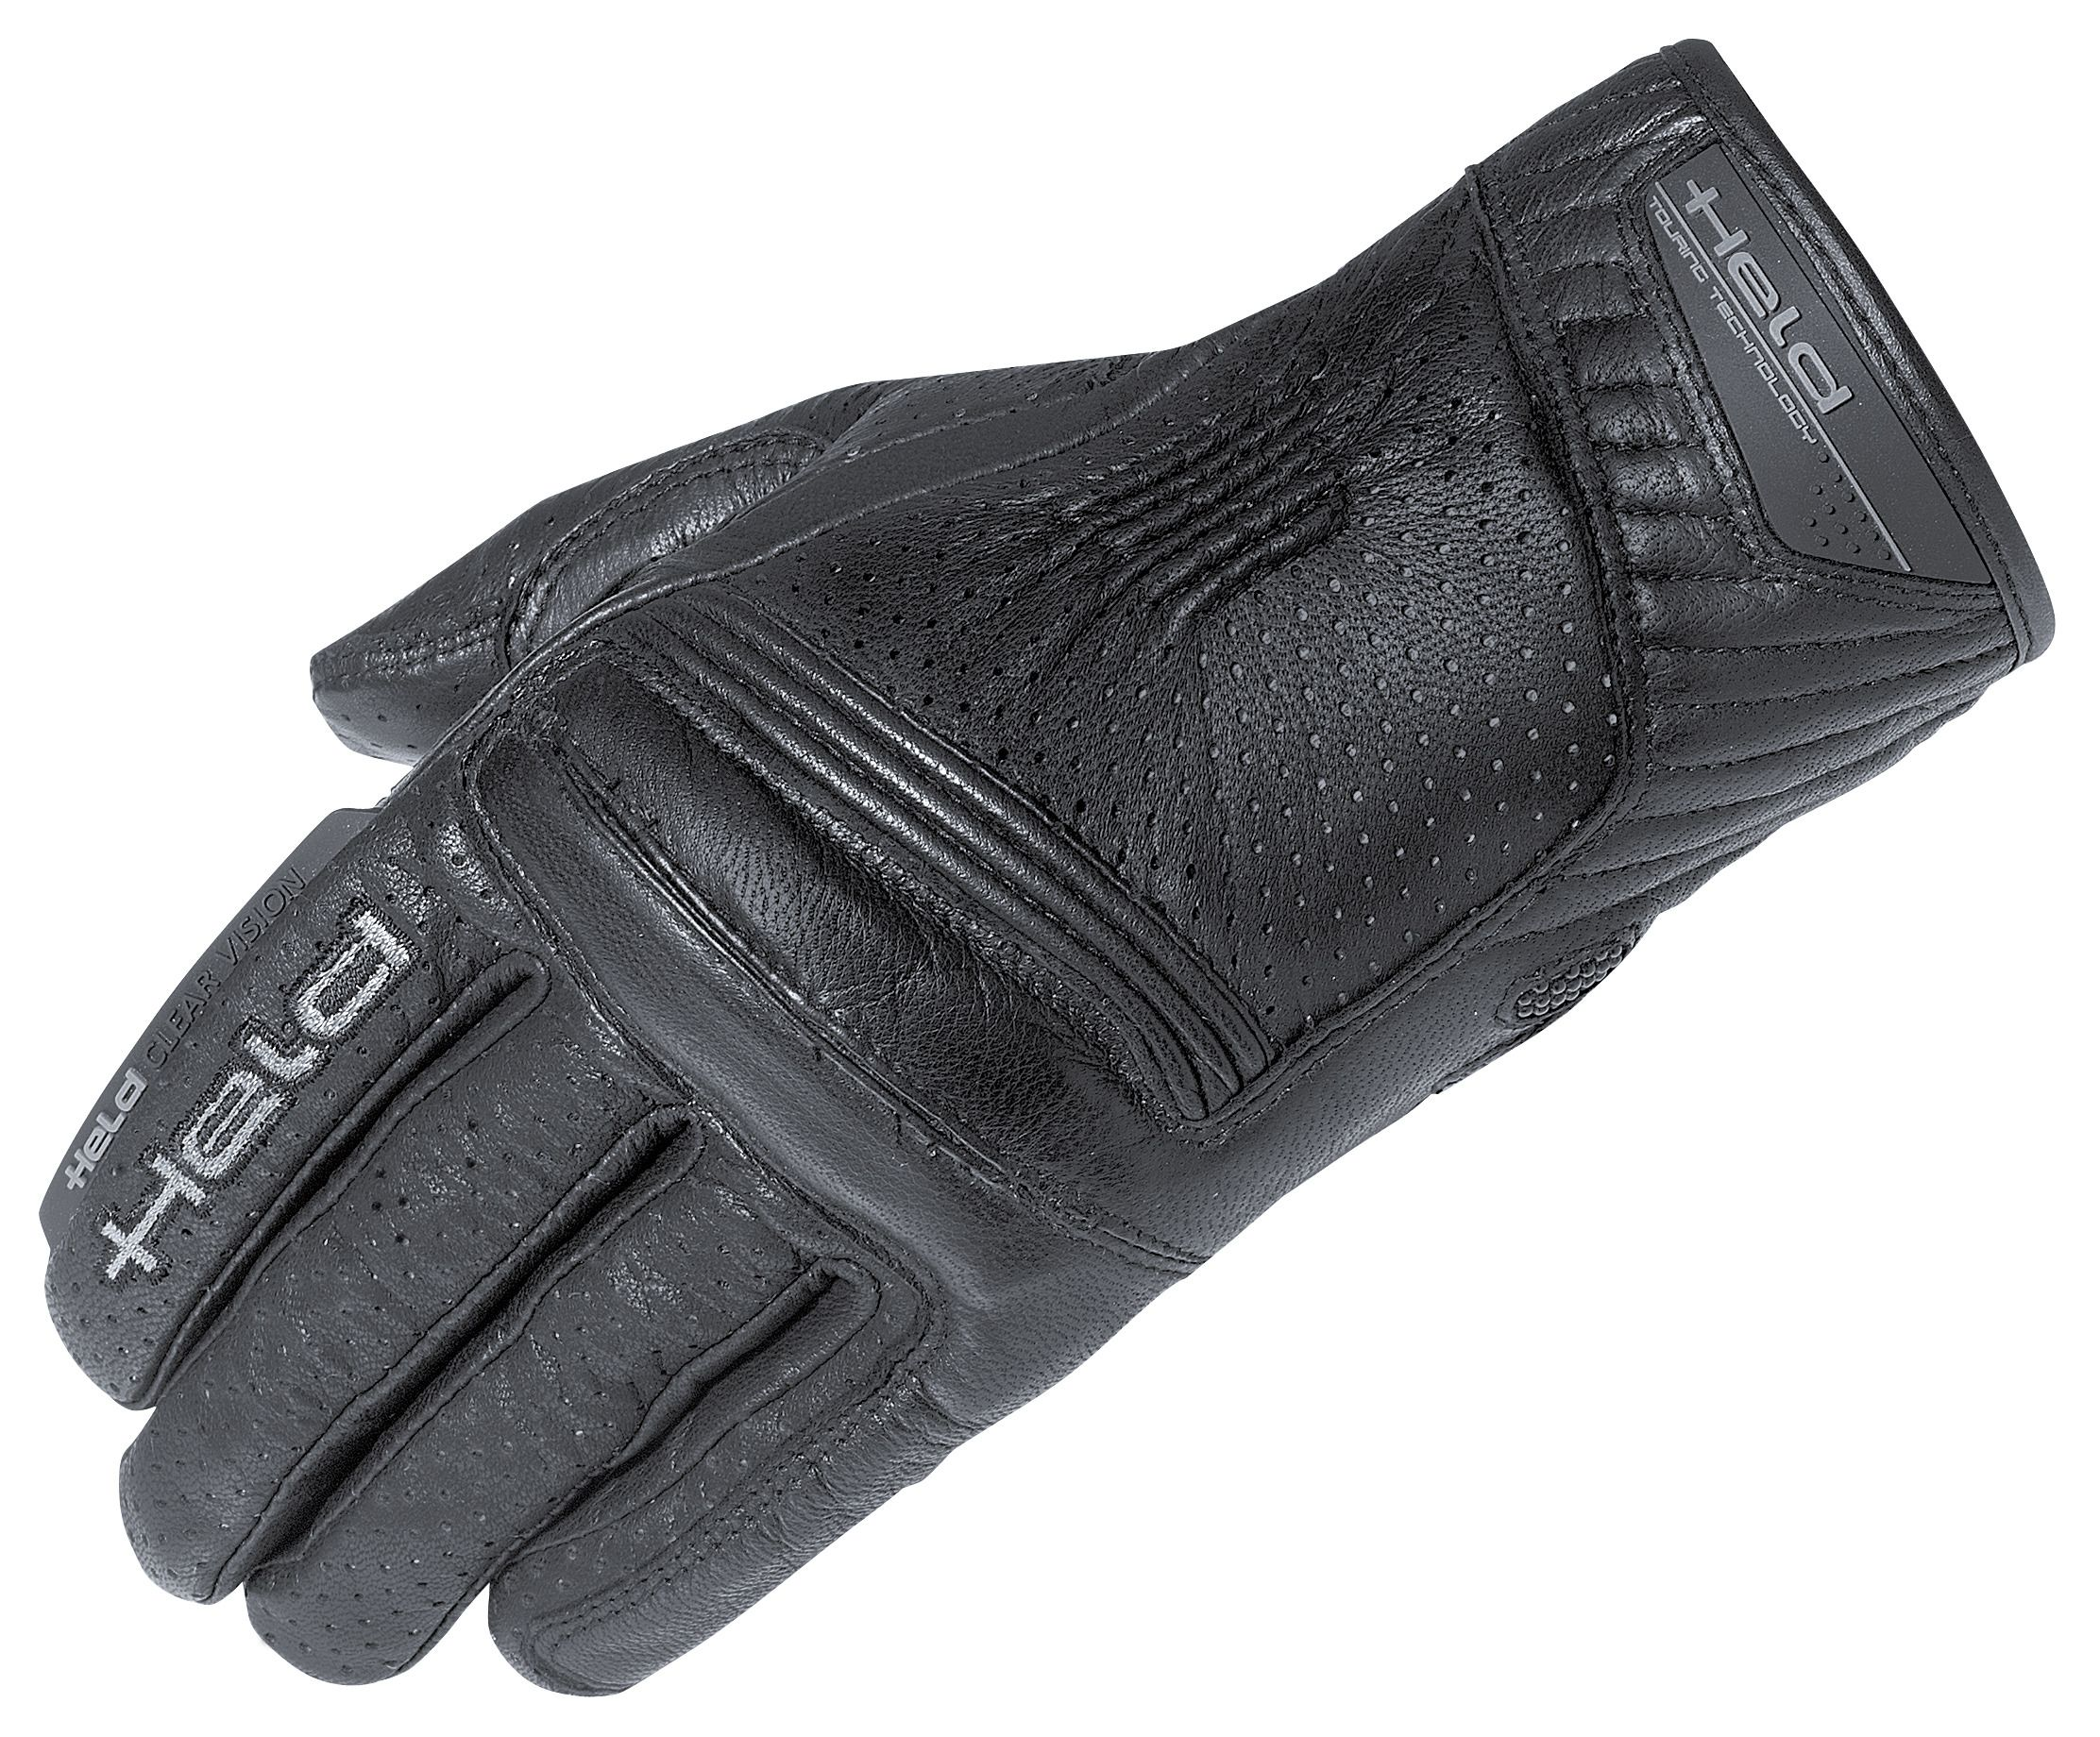 Black leather gloves meaning - Black Leather Gloves Meaning 40